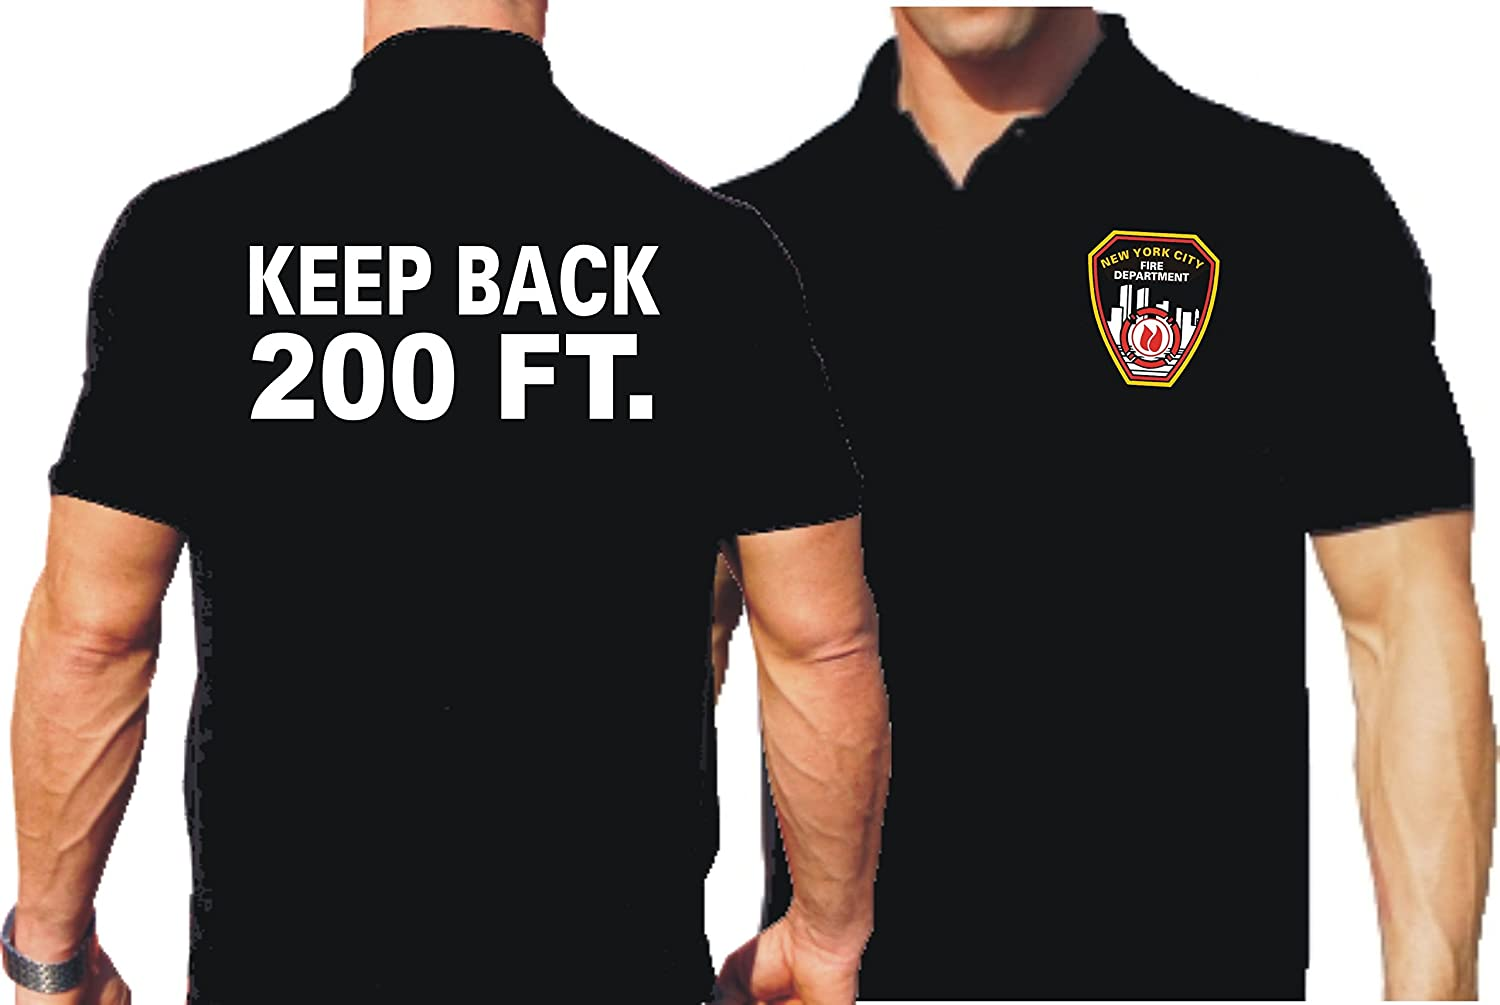 Polo da Black, keep BACK 200 ft. con Emblem New York Fire Department feuer1